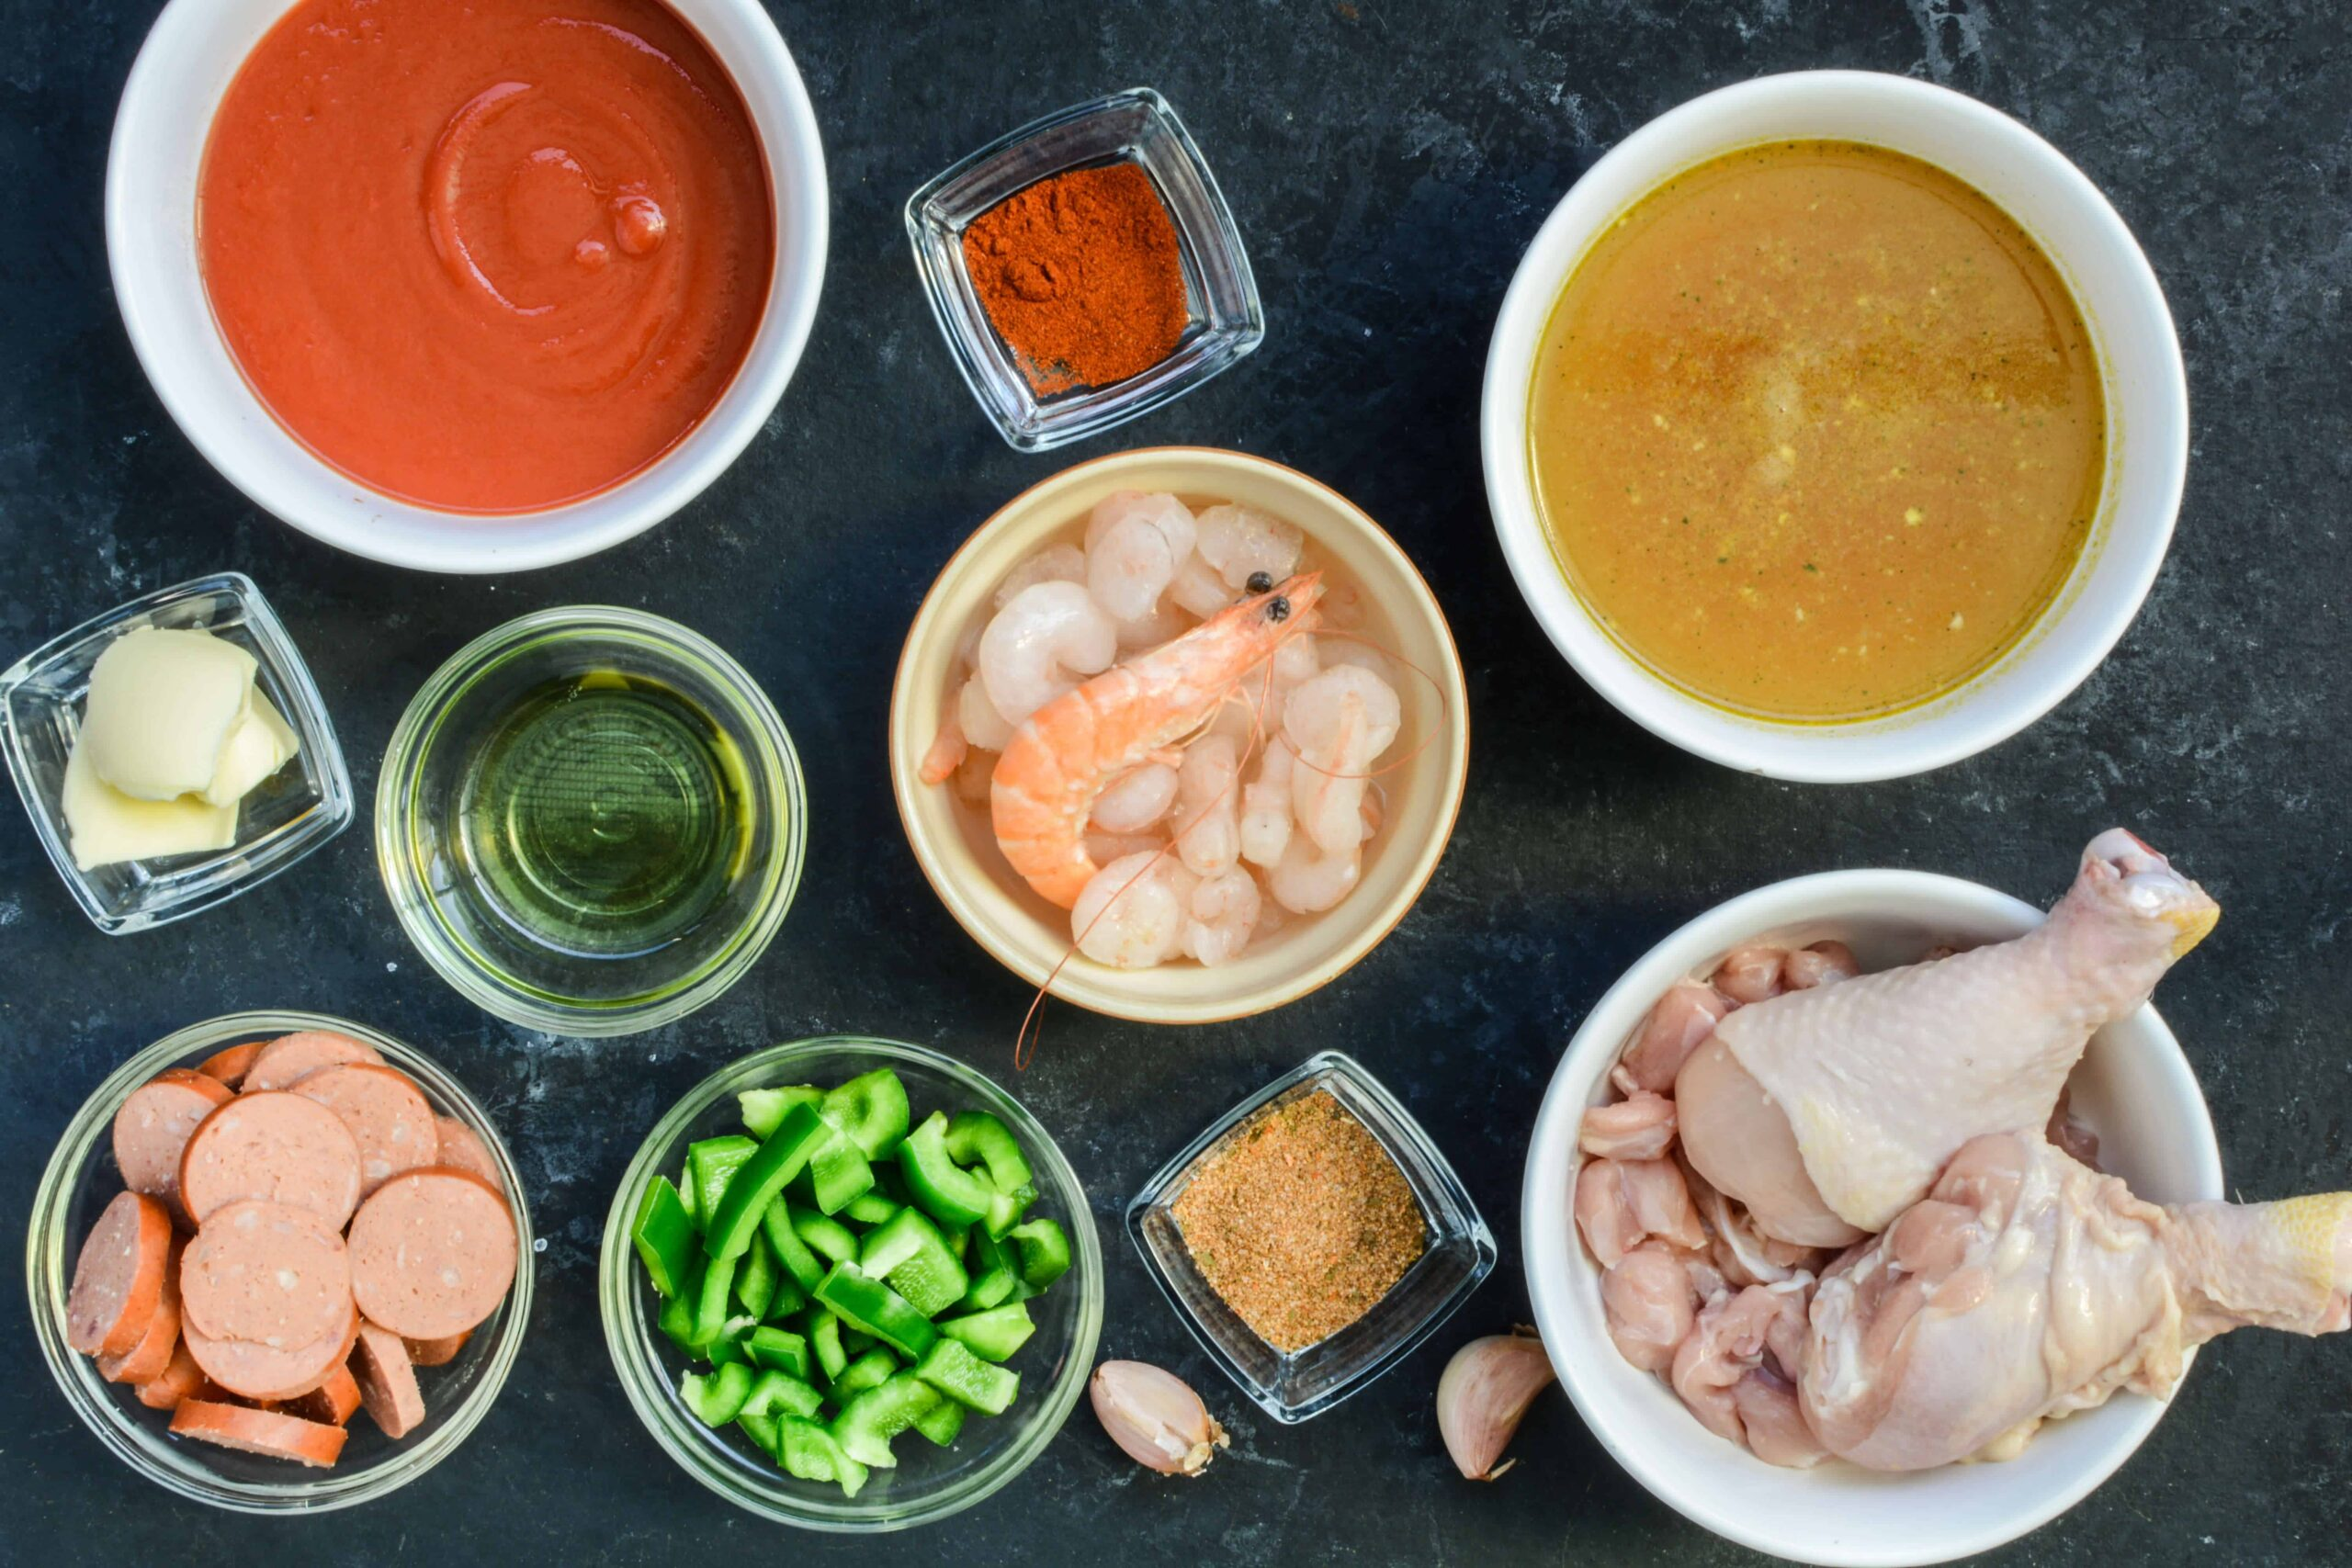 ingredients for low carb gumbo